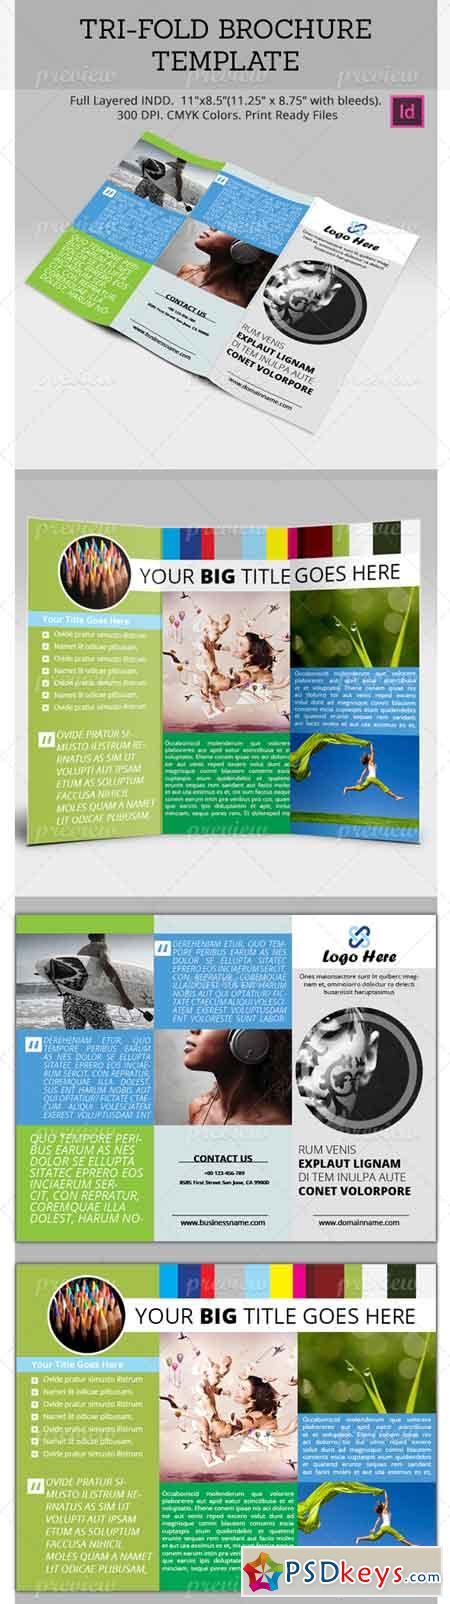 Tri fold brochure template 2049 free download photoshop for Free indesign tri fold brochure template